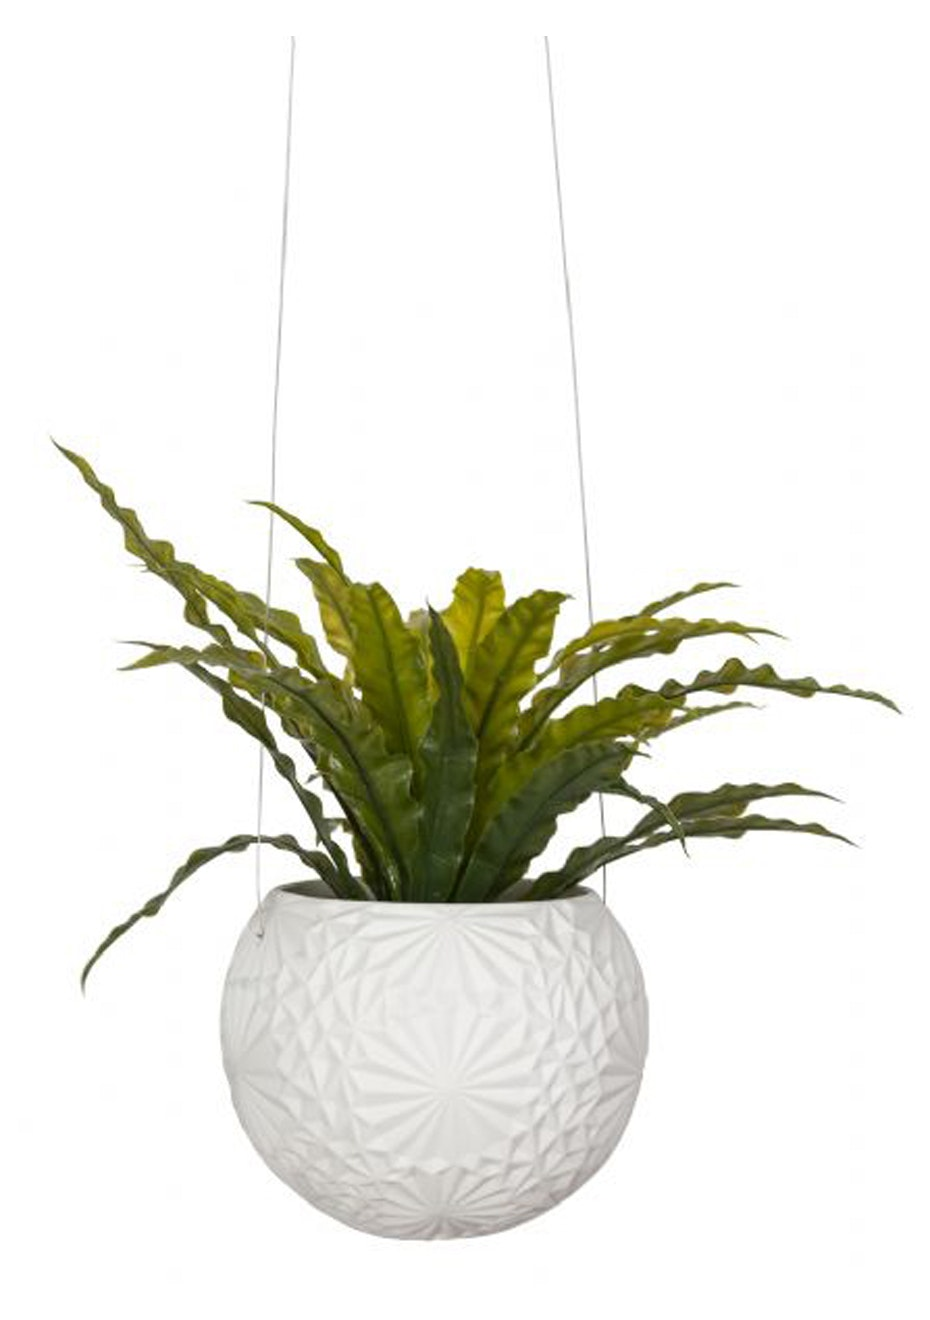 General Eclectic - Hanging Planter Sflake